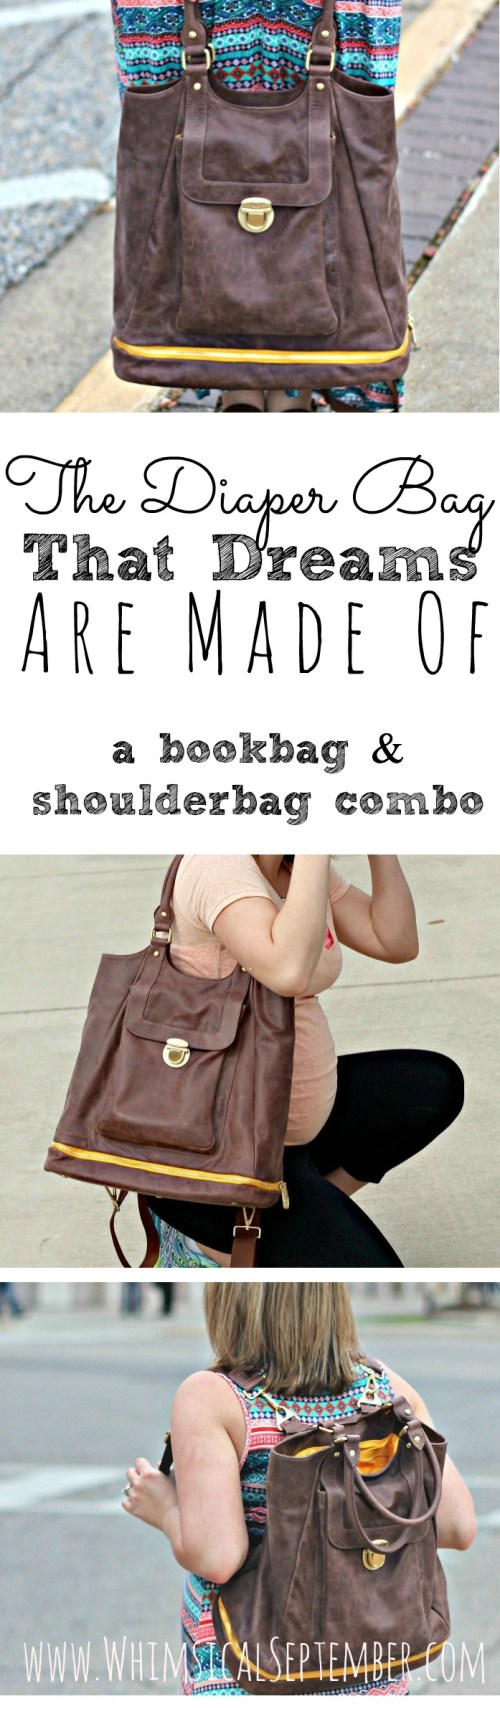 The diaper bag that dreams are made of - A bookbag and shoulder bag combo!